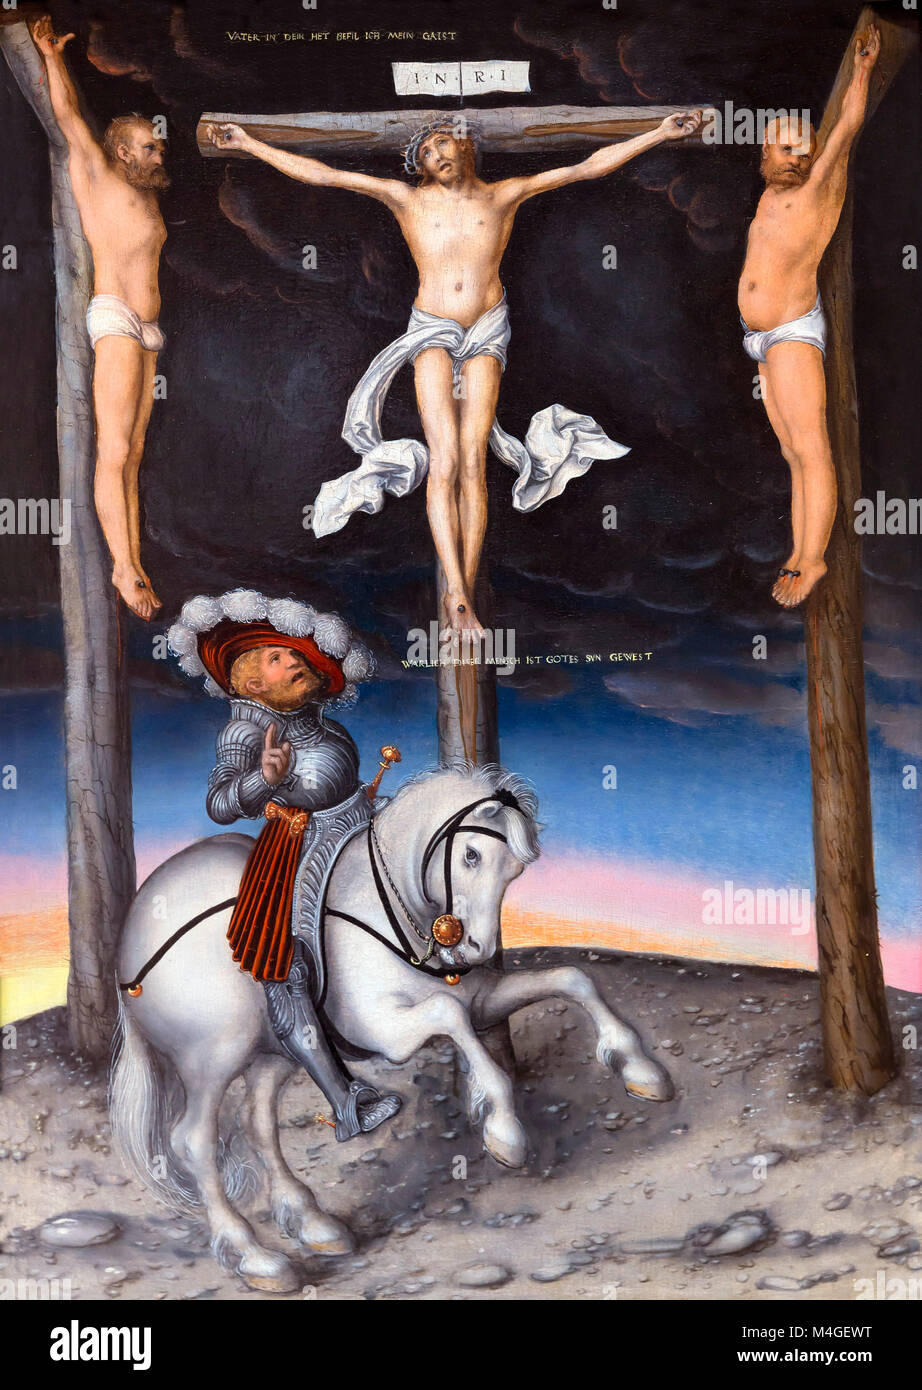 The Crucifixion with the Converted Centurion, Lucas Cranach the Elder, 1536, National Gallery of Art, Washington - Stock Image